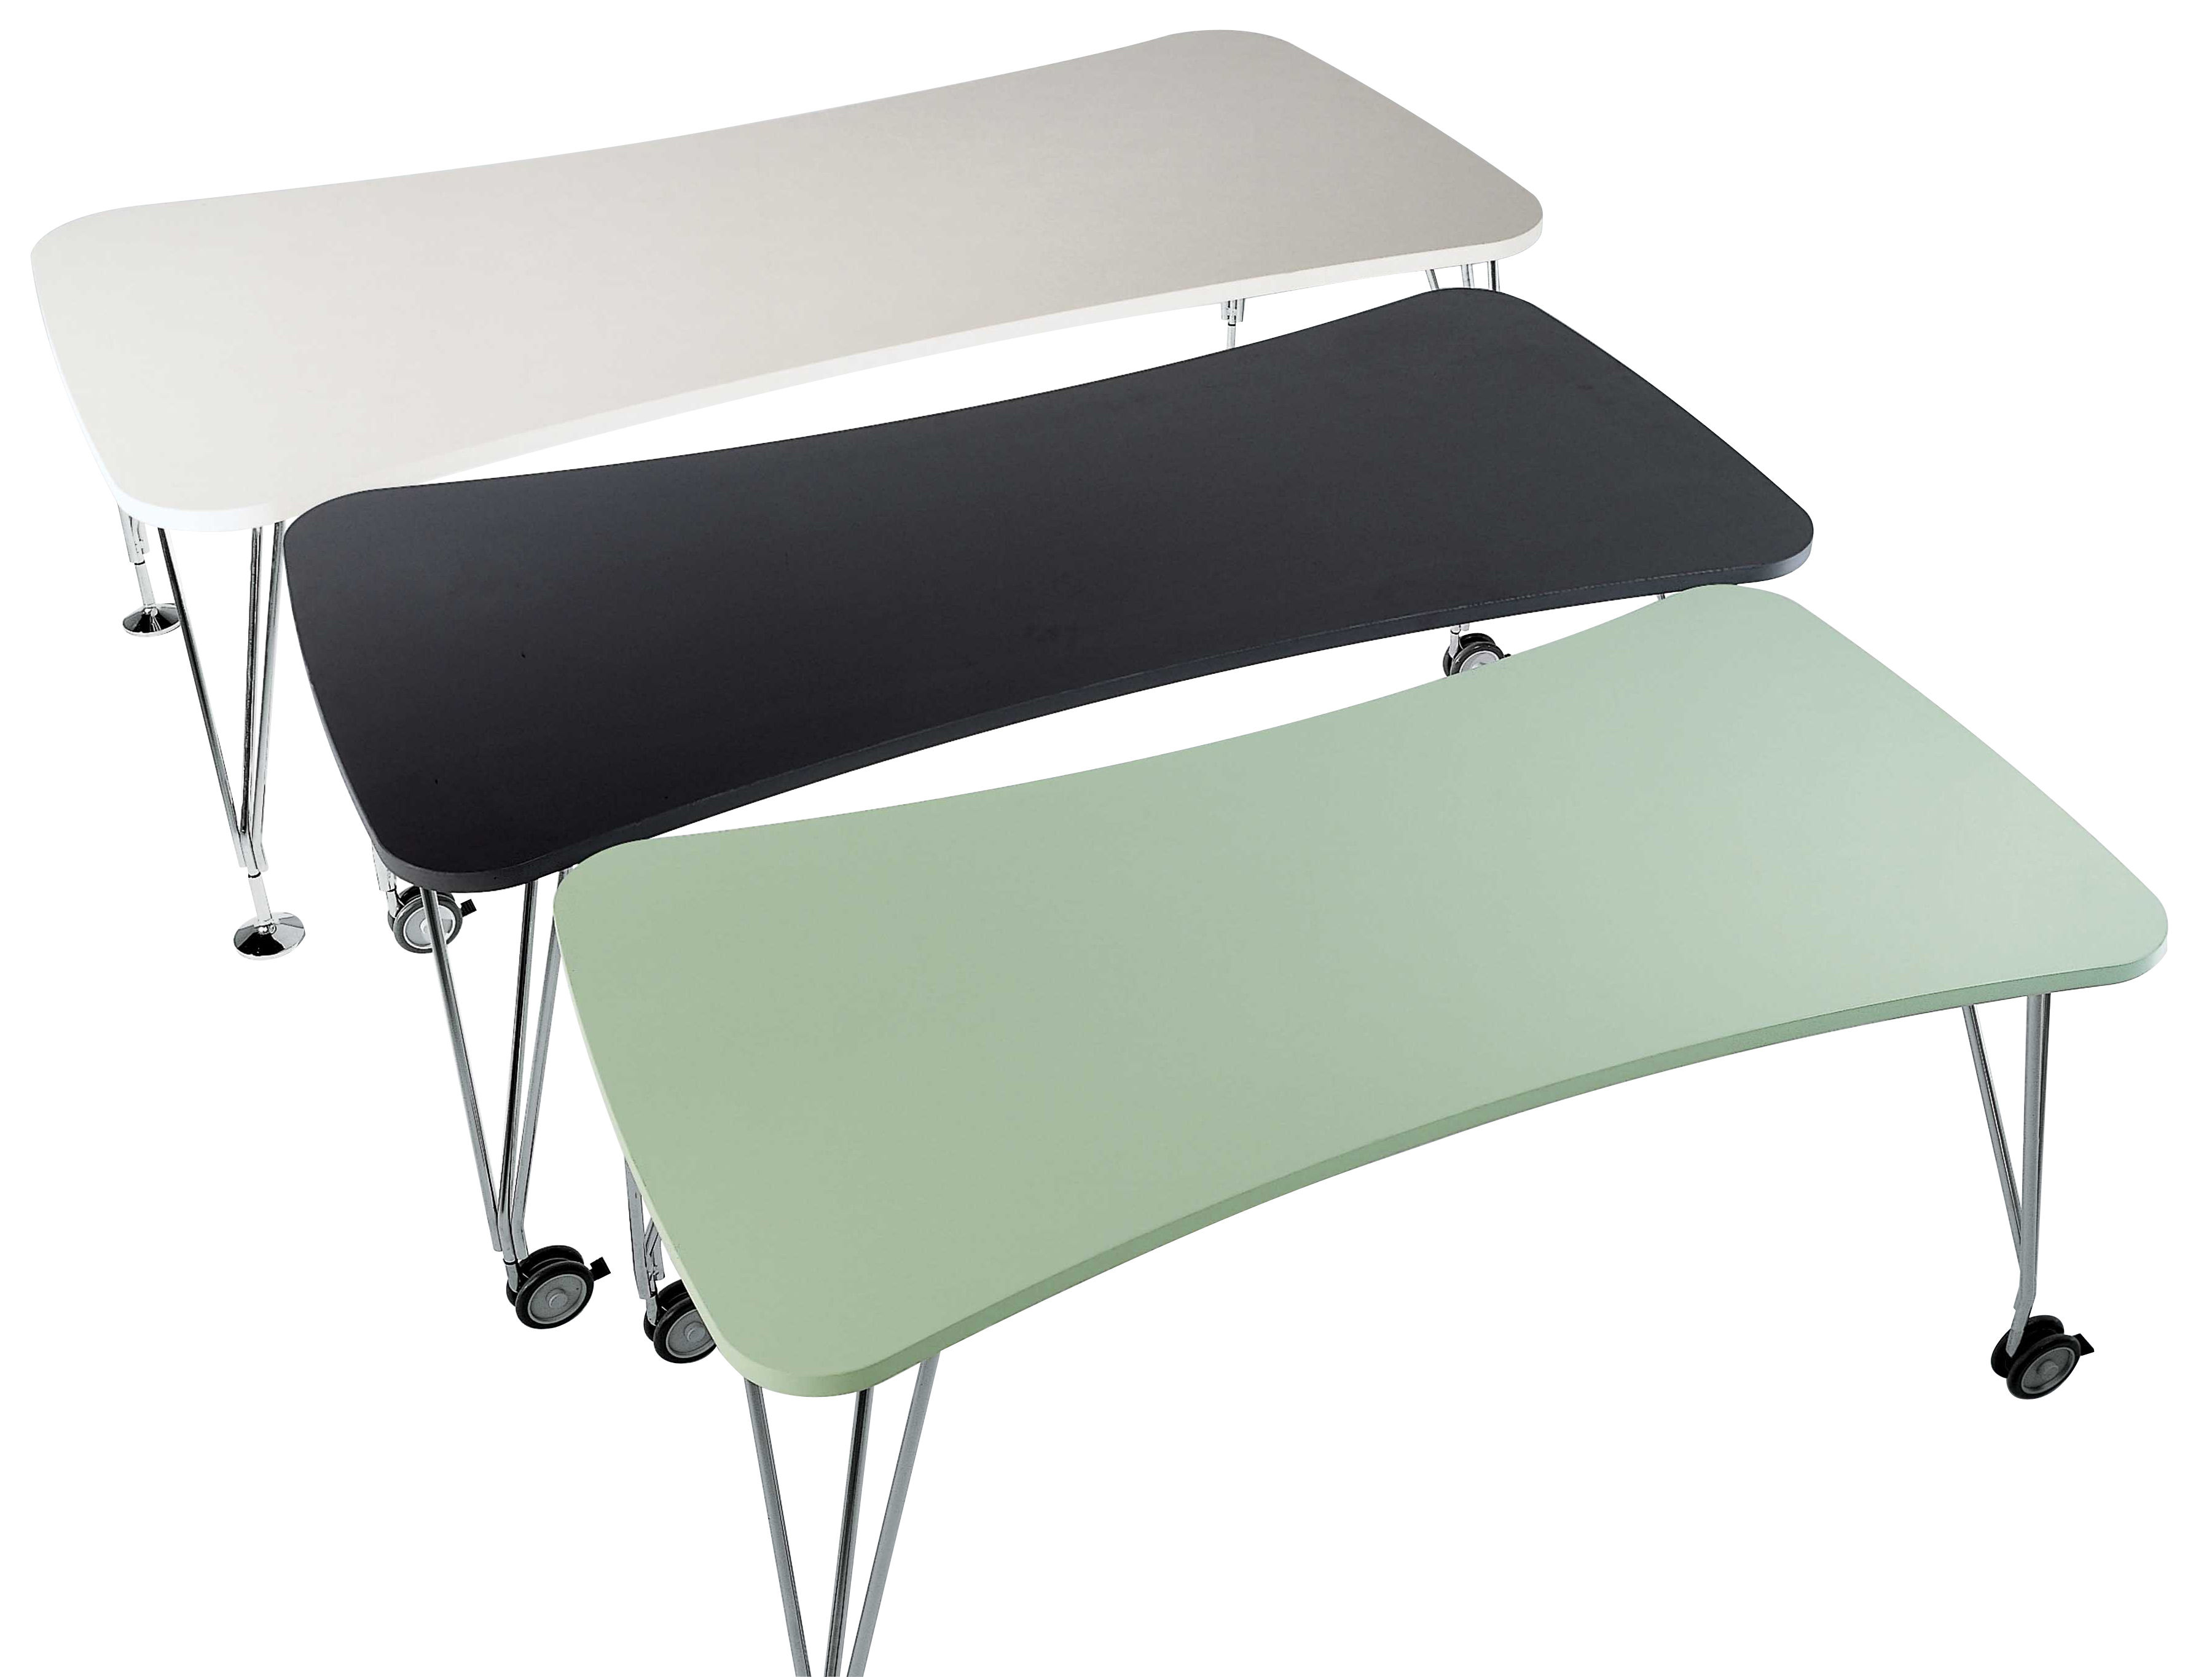 Furniture - Teen furniture - Max Table - With feet - 190 cm by Kartell - white 190 cm - Chromed steel, Laminate